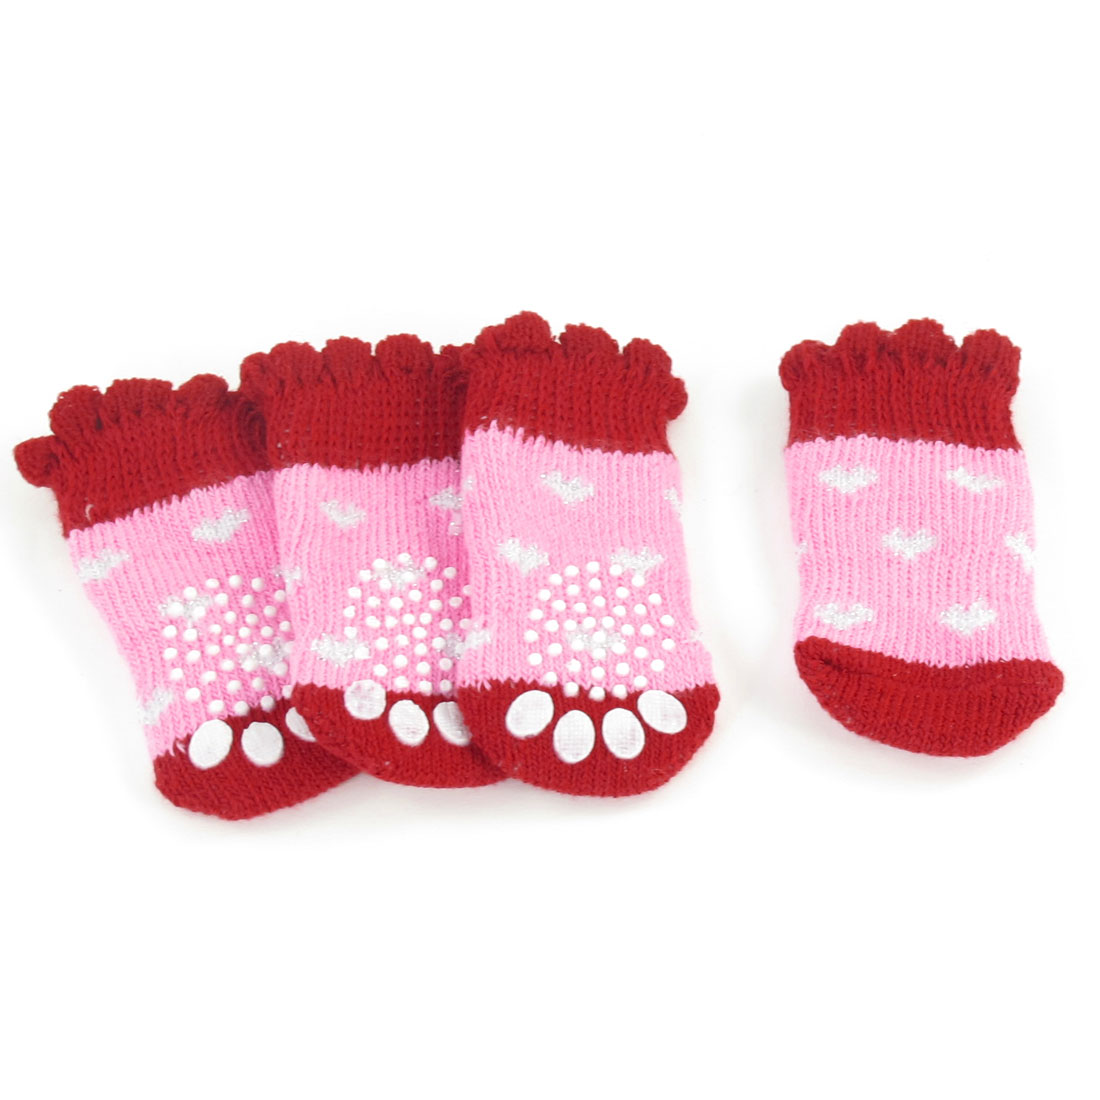 2 Pairs Hearts Printed Acrylic Pet Dog Doggie Puppy Socks Red Pink Size S